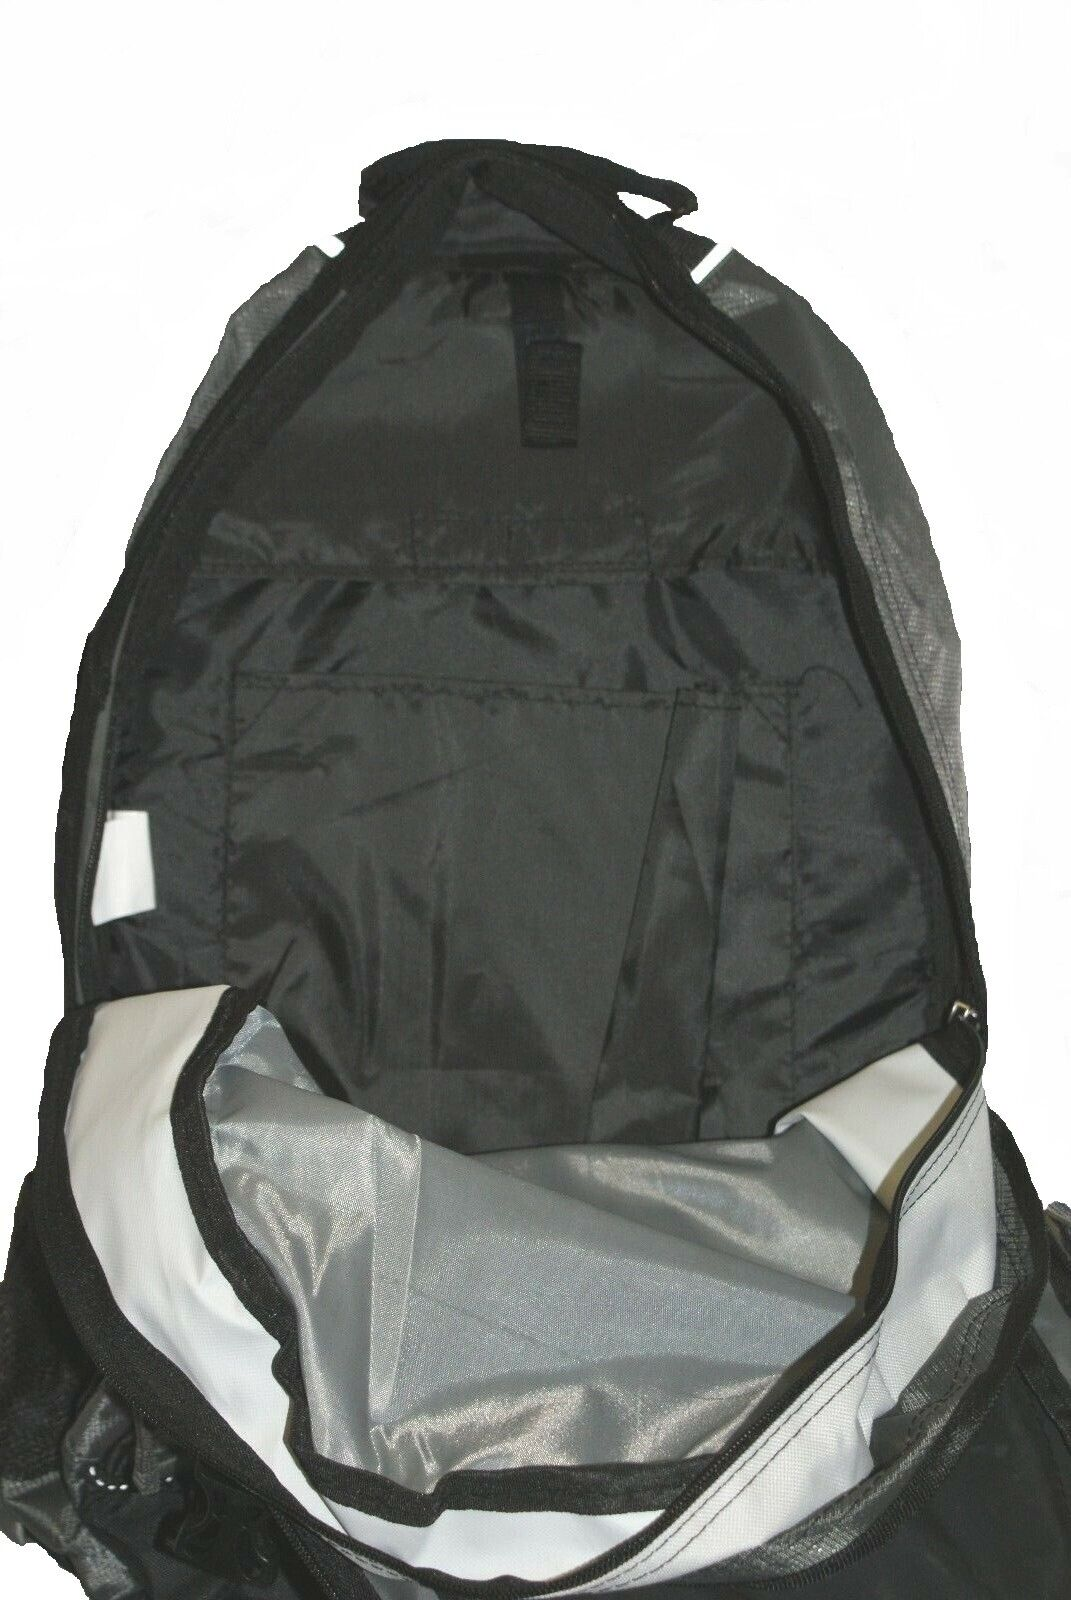 Outdoor Products Vortex 8.0 Black White Backpack School Travel Hiking Camp 6C3